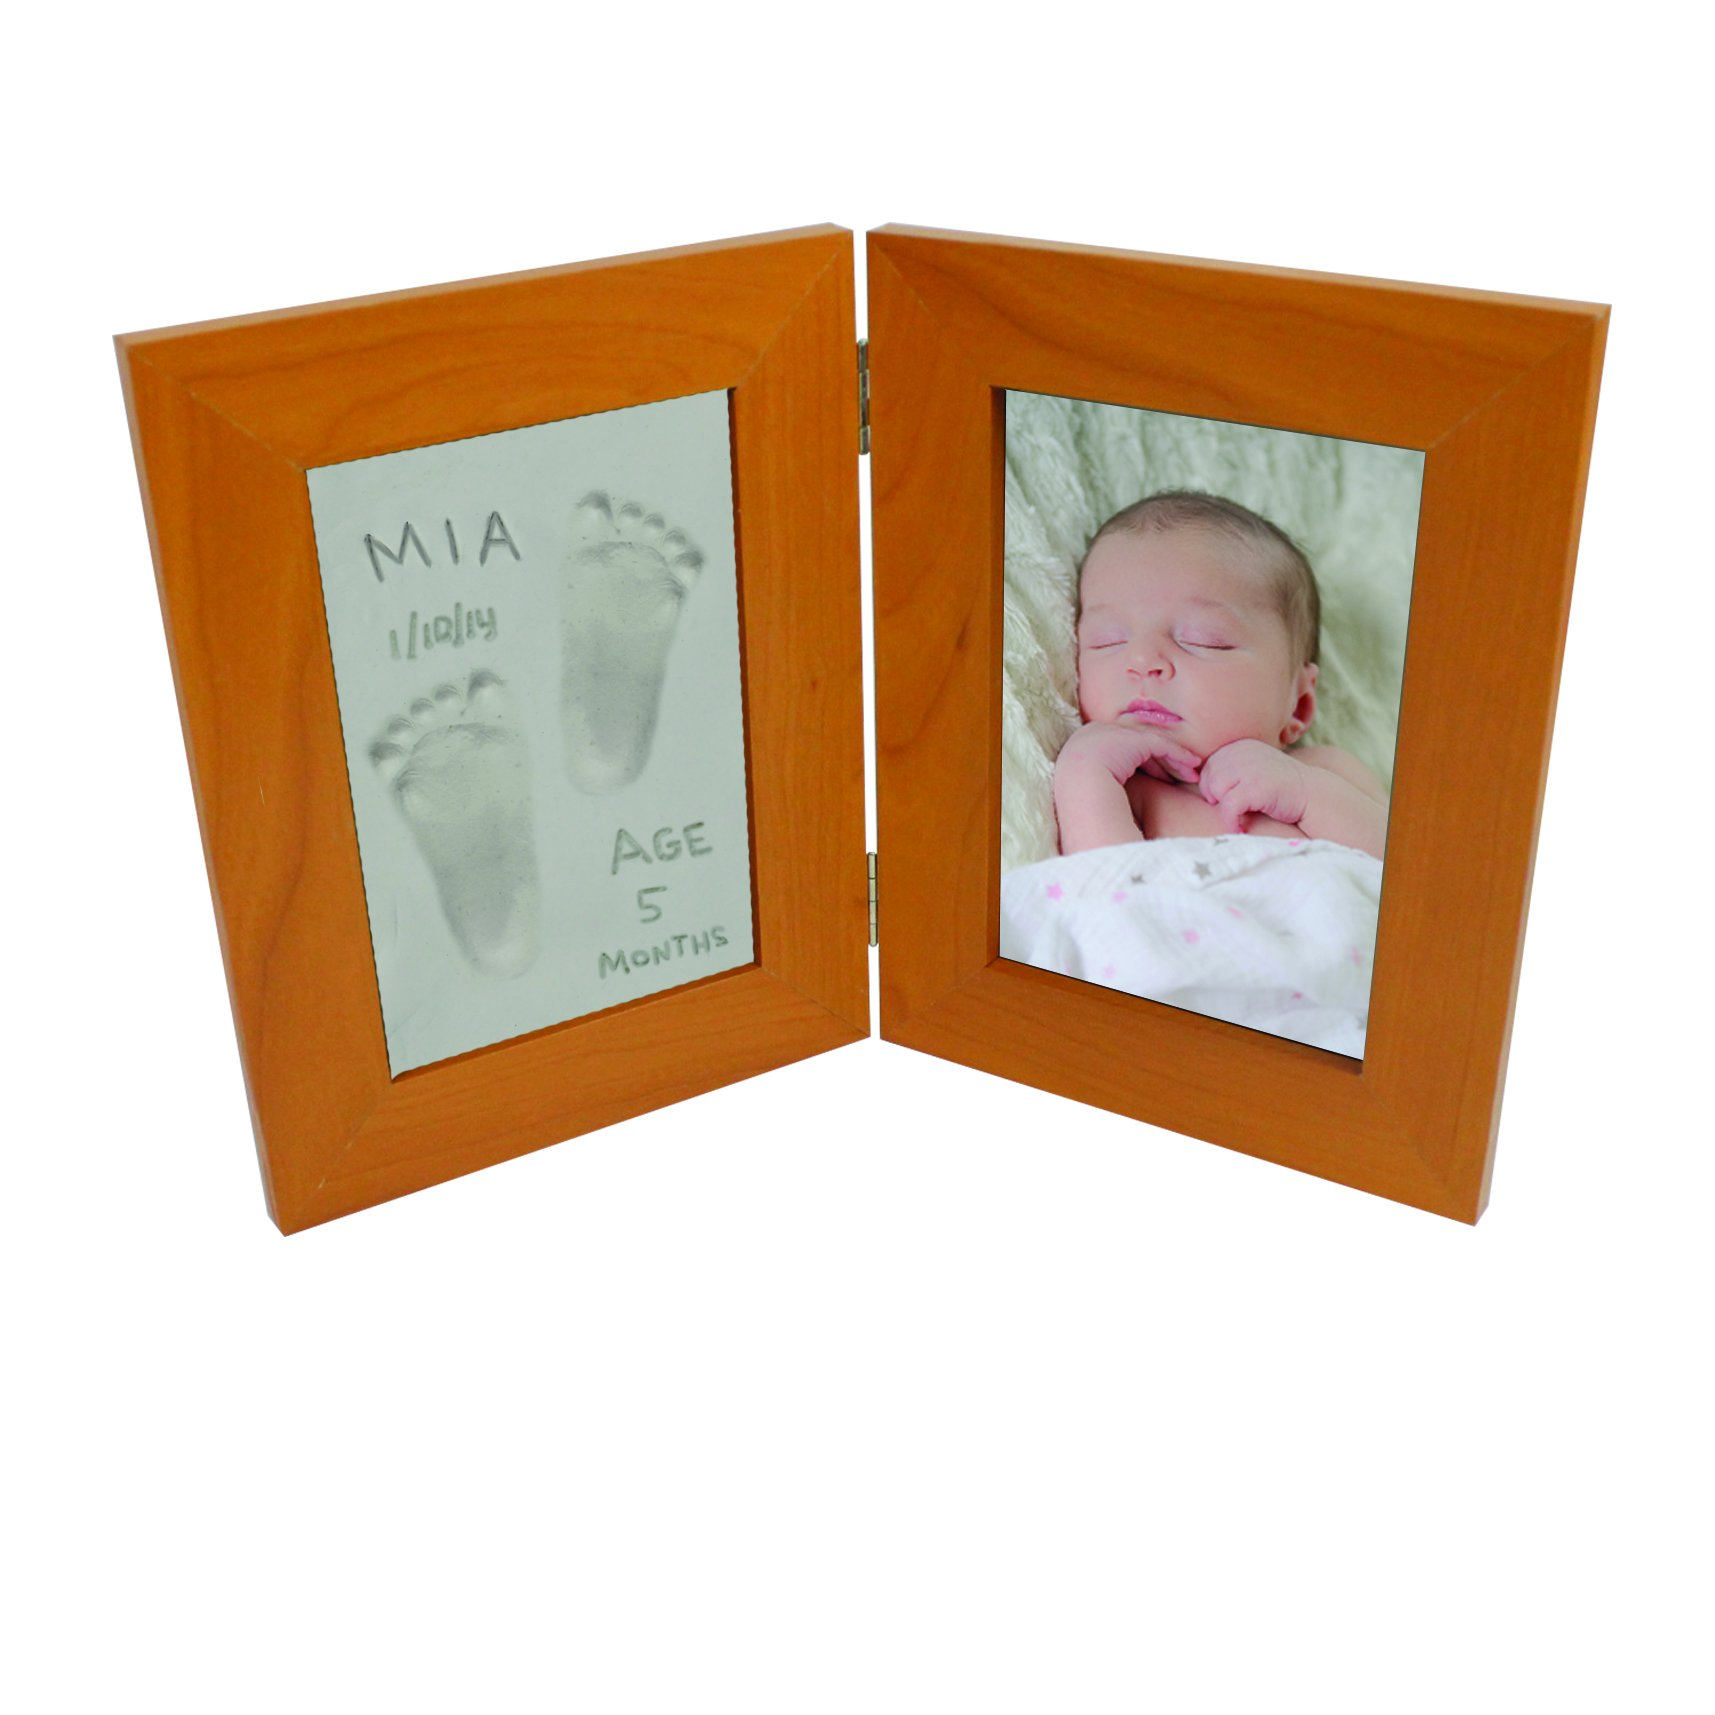 Baby Print Casting Kit - Air Dry No Mess Keepsake Kit with 4'' X 6'' Picture Frame - No Baking Required by Little Sprout (Image #2)